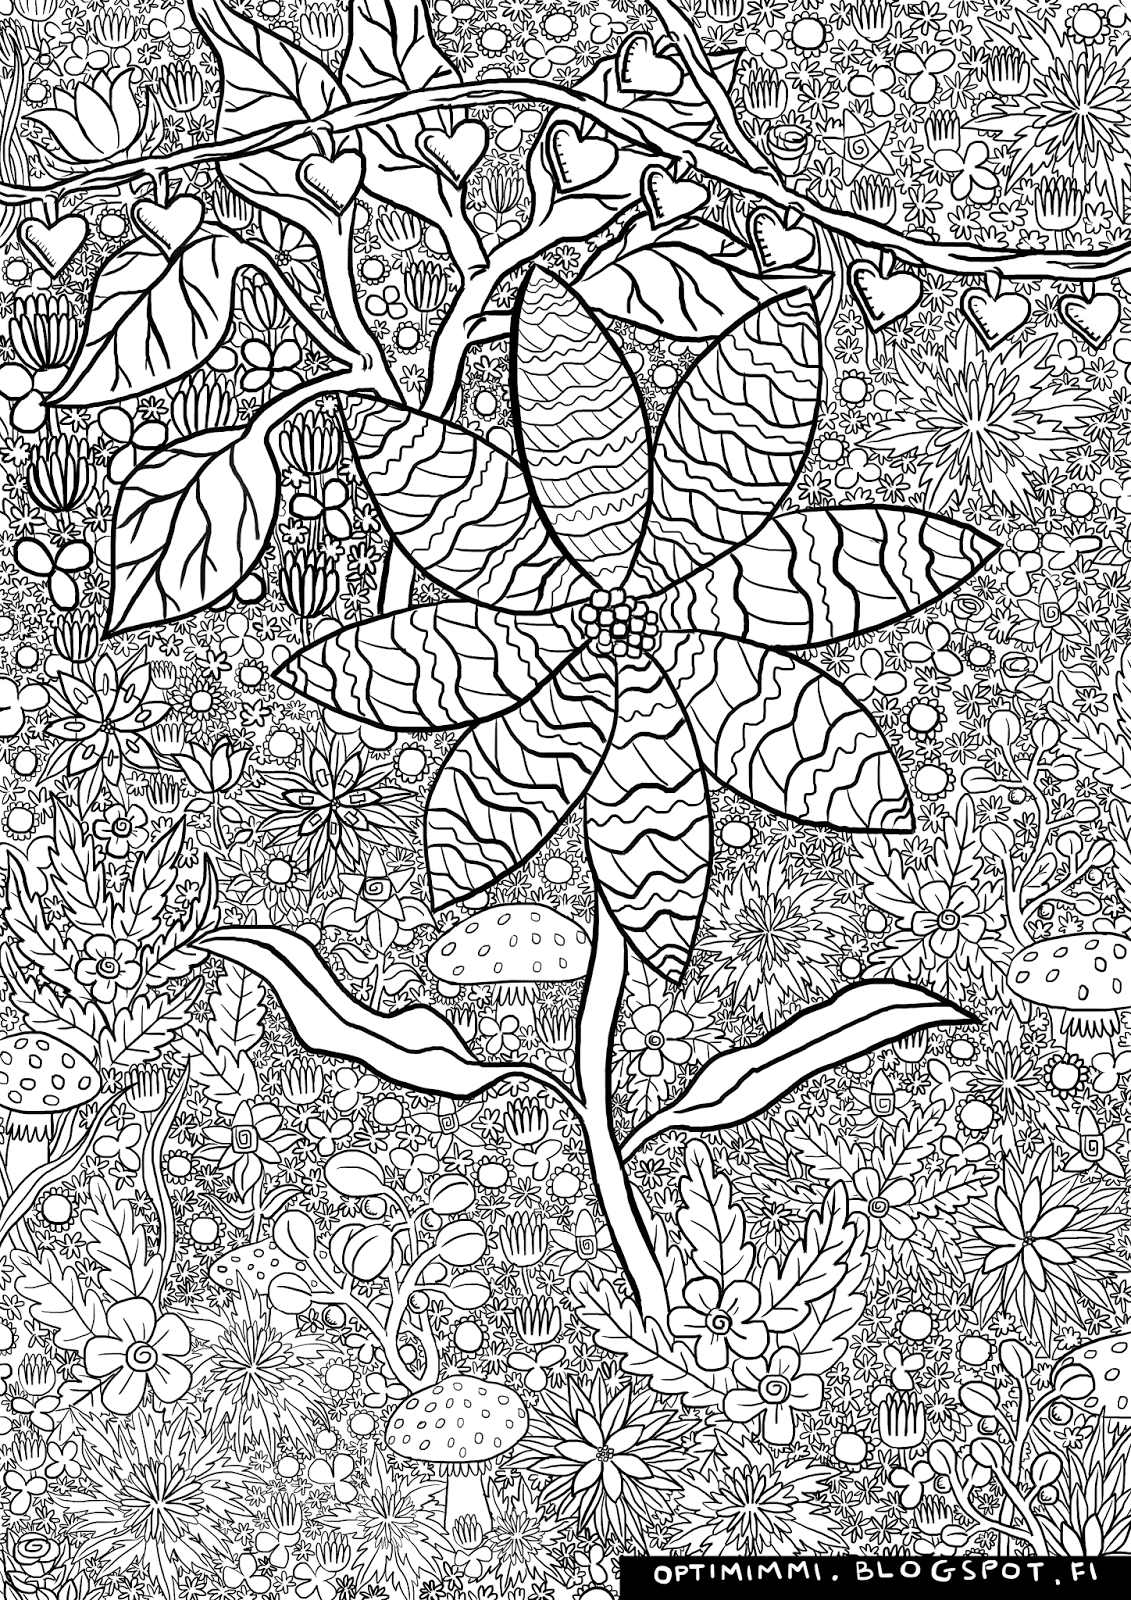 OPTIMIMMI 2016 Coloring pages